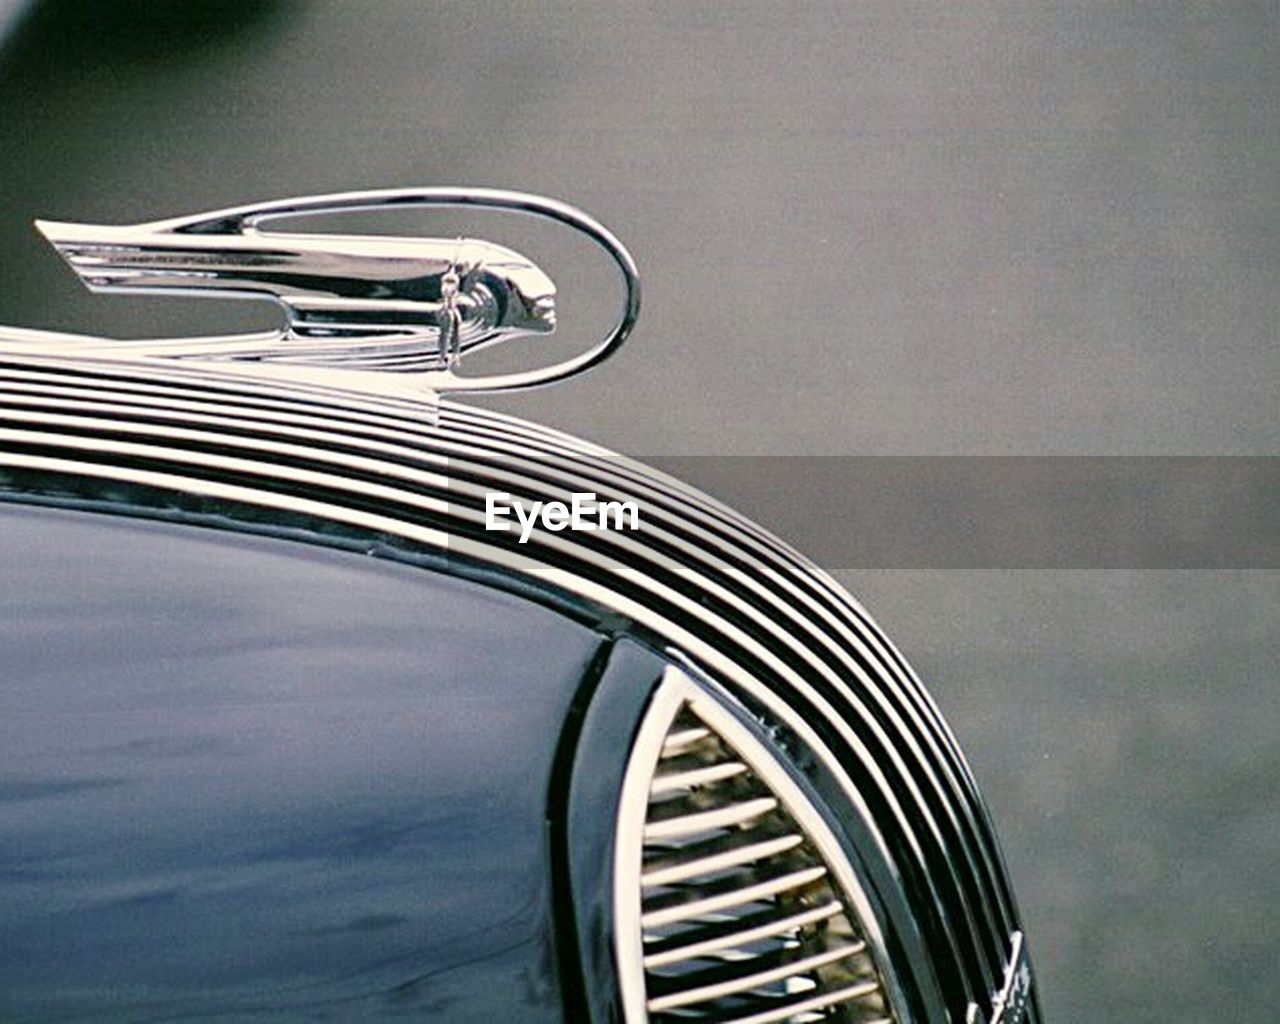 transportation, metal, mode of transport, land vehicle, chrome, bicycle, pedal, day, no people, outdoors, stationary, tire, vehicle part, close-up